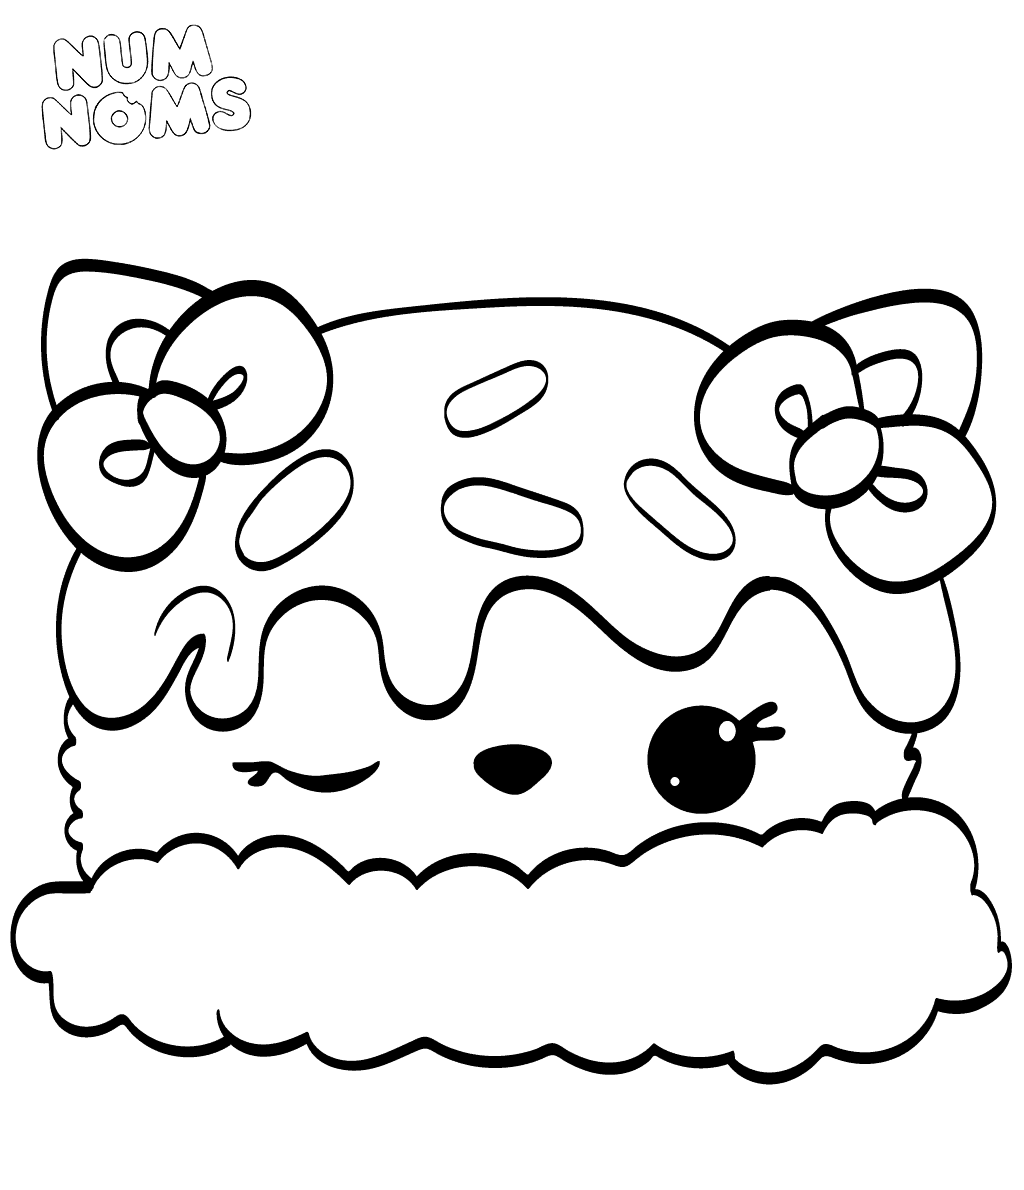 Num Noms Colouring Pages Sara Strawberry Coloring Pages Cartoon Coloring Pages Cute Coloring Pages